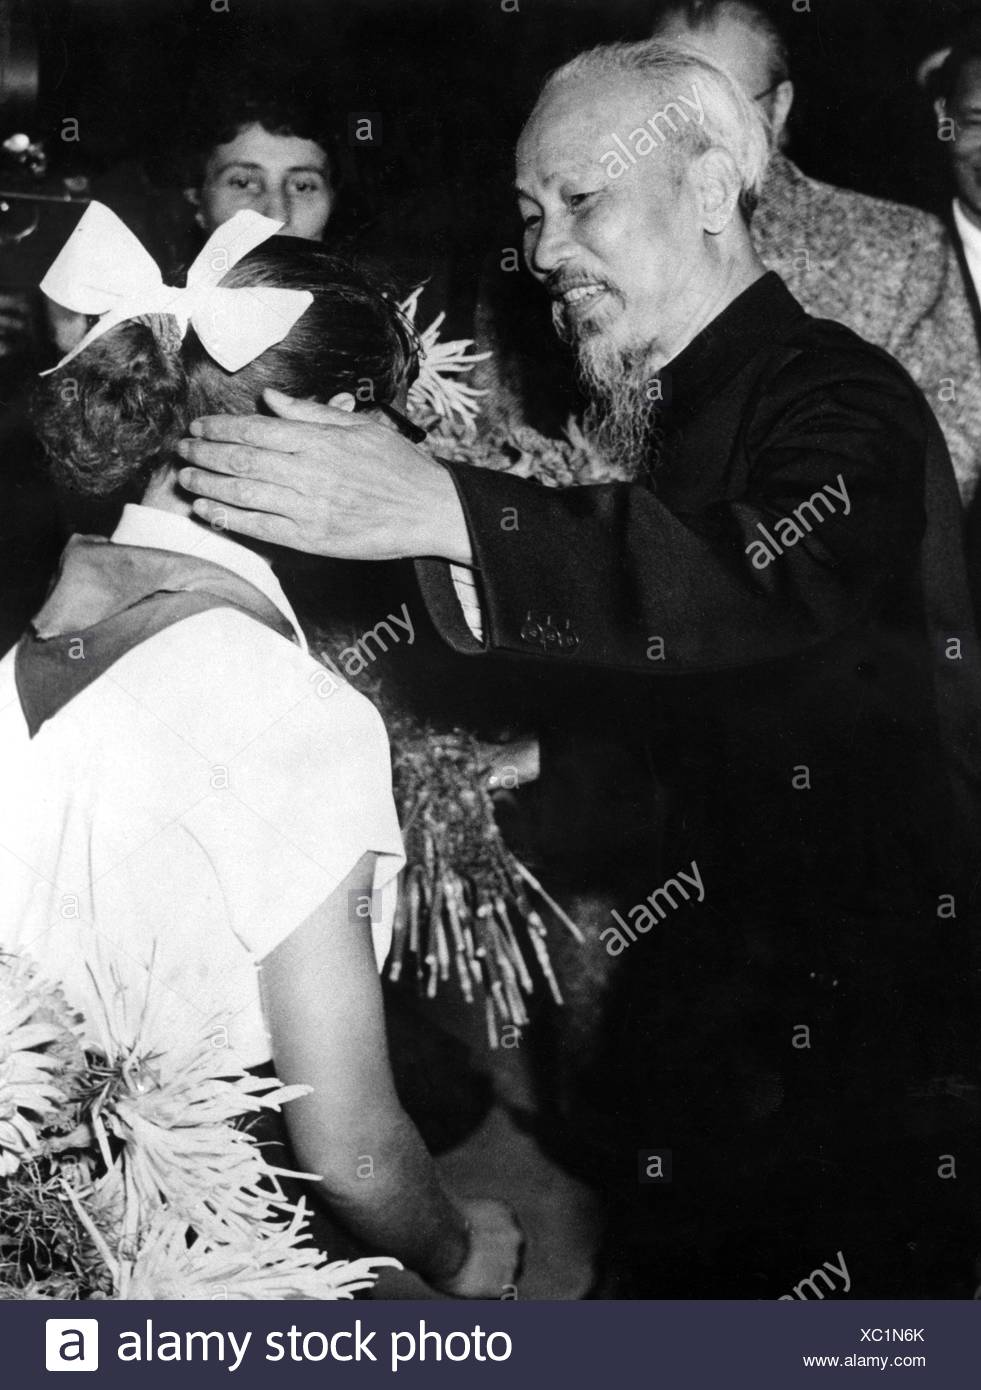 Ho Chi Minh, 15.5.1890 - 3.9. 1969, Vietnamese politician, President of North Vietnam 1955 - 1969, half length, receiption by young pioneers of the GDR, East Berlin, 26.7.1957, Additional-Rights-Clearances-NA - Stock Image